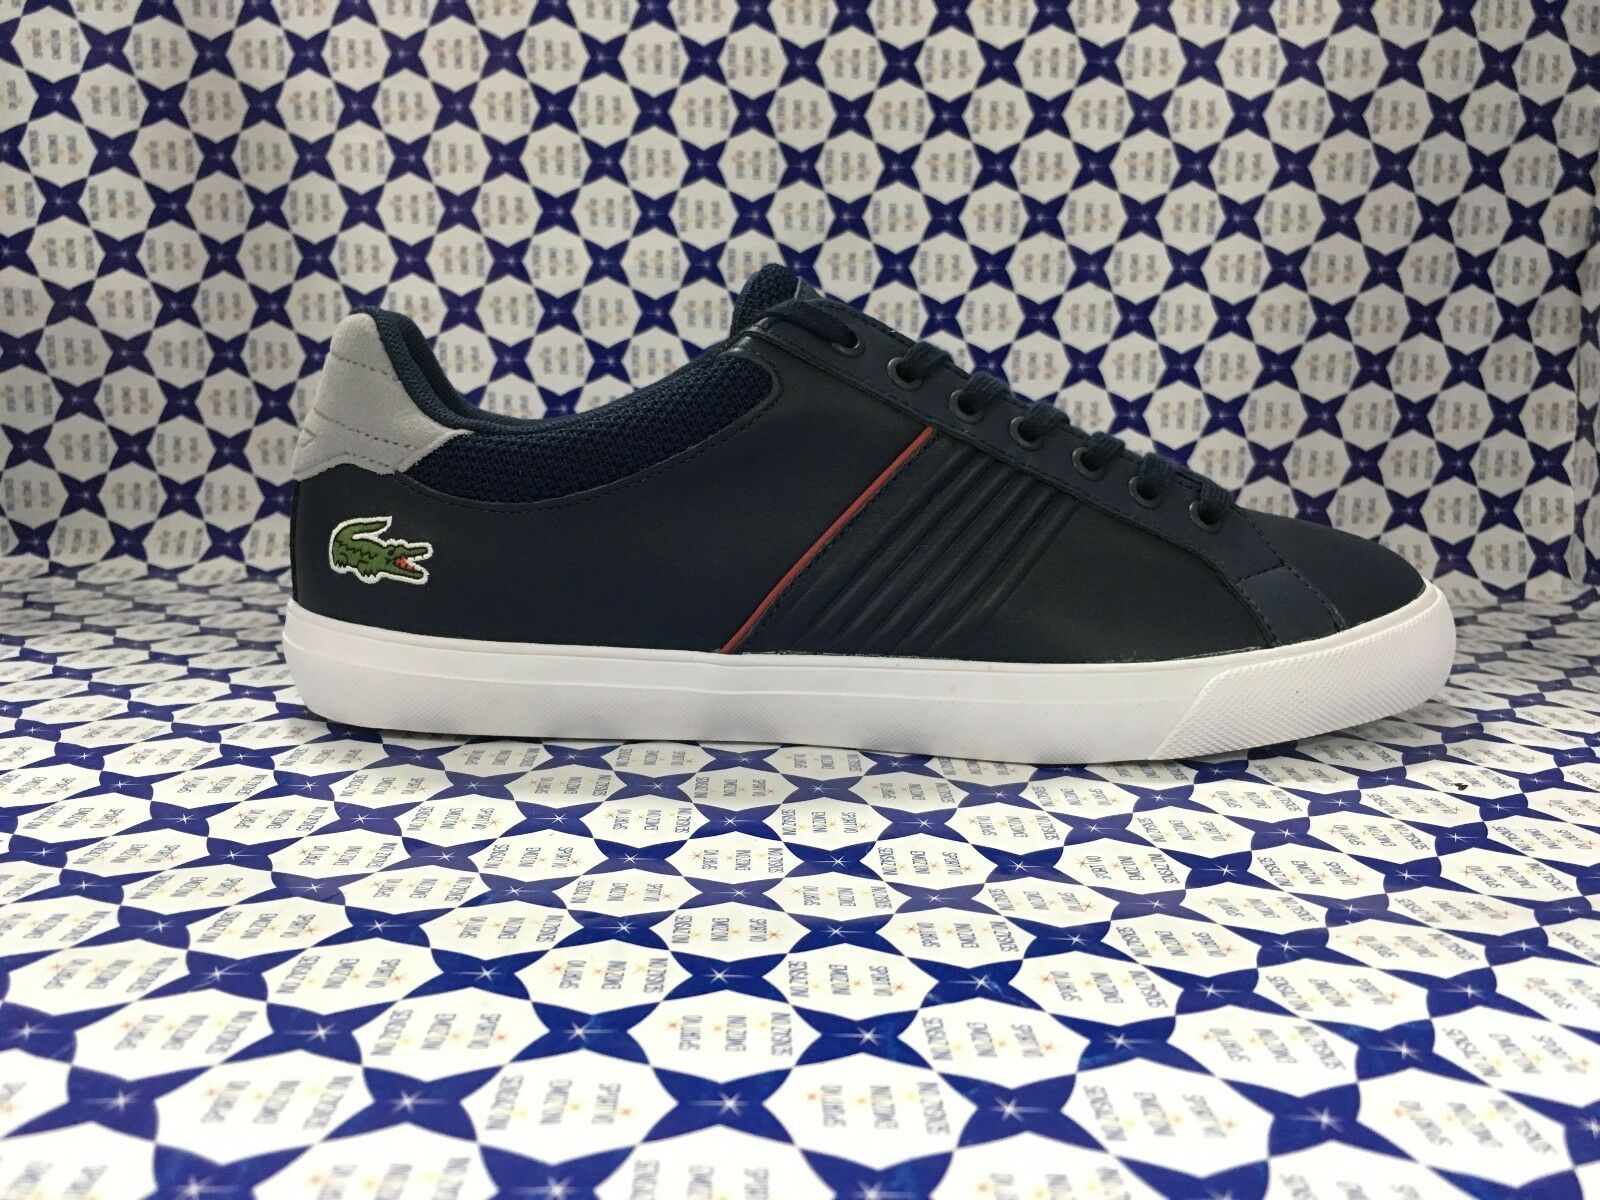 9ce9de34bc2 shoes LACOSTE men Sneakers 117 - blue - CAM1031 Fairlead Navy ...